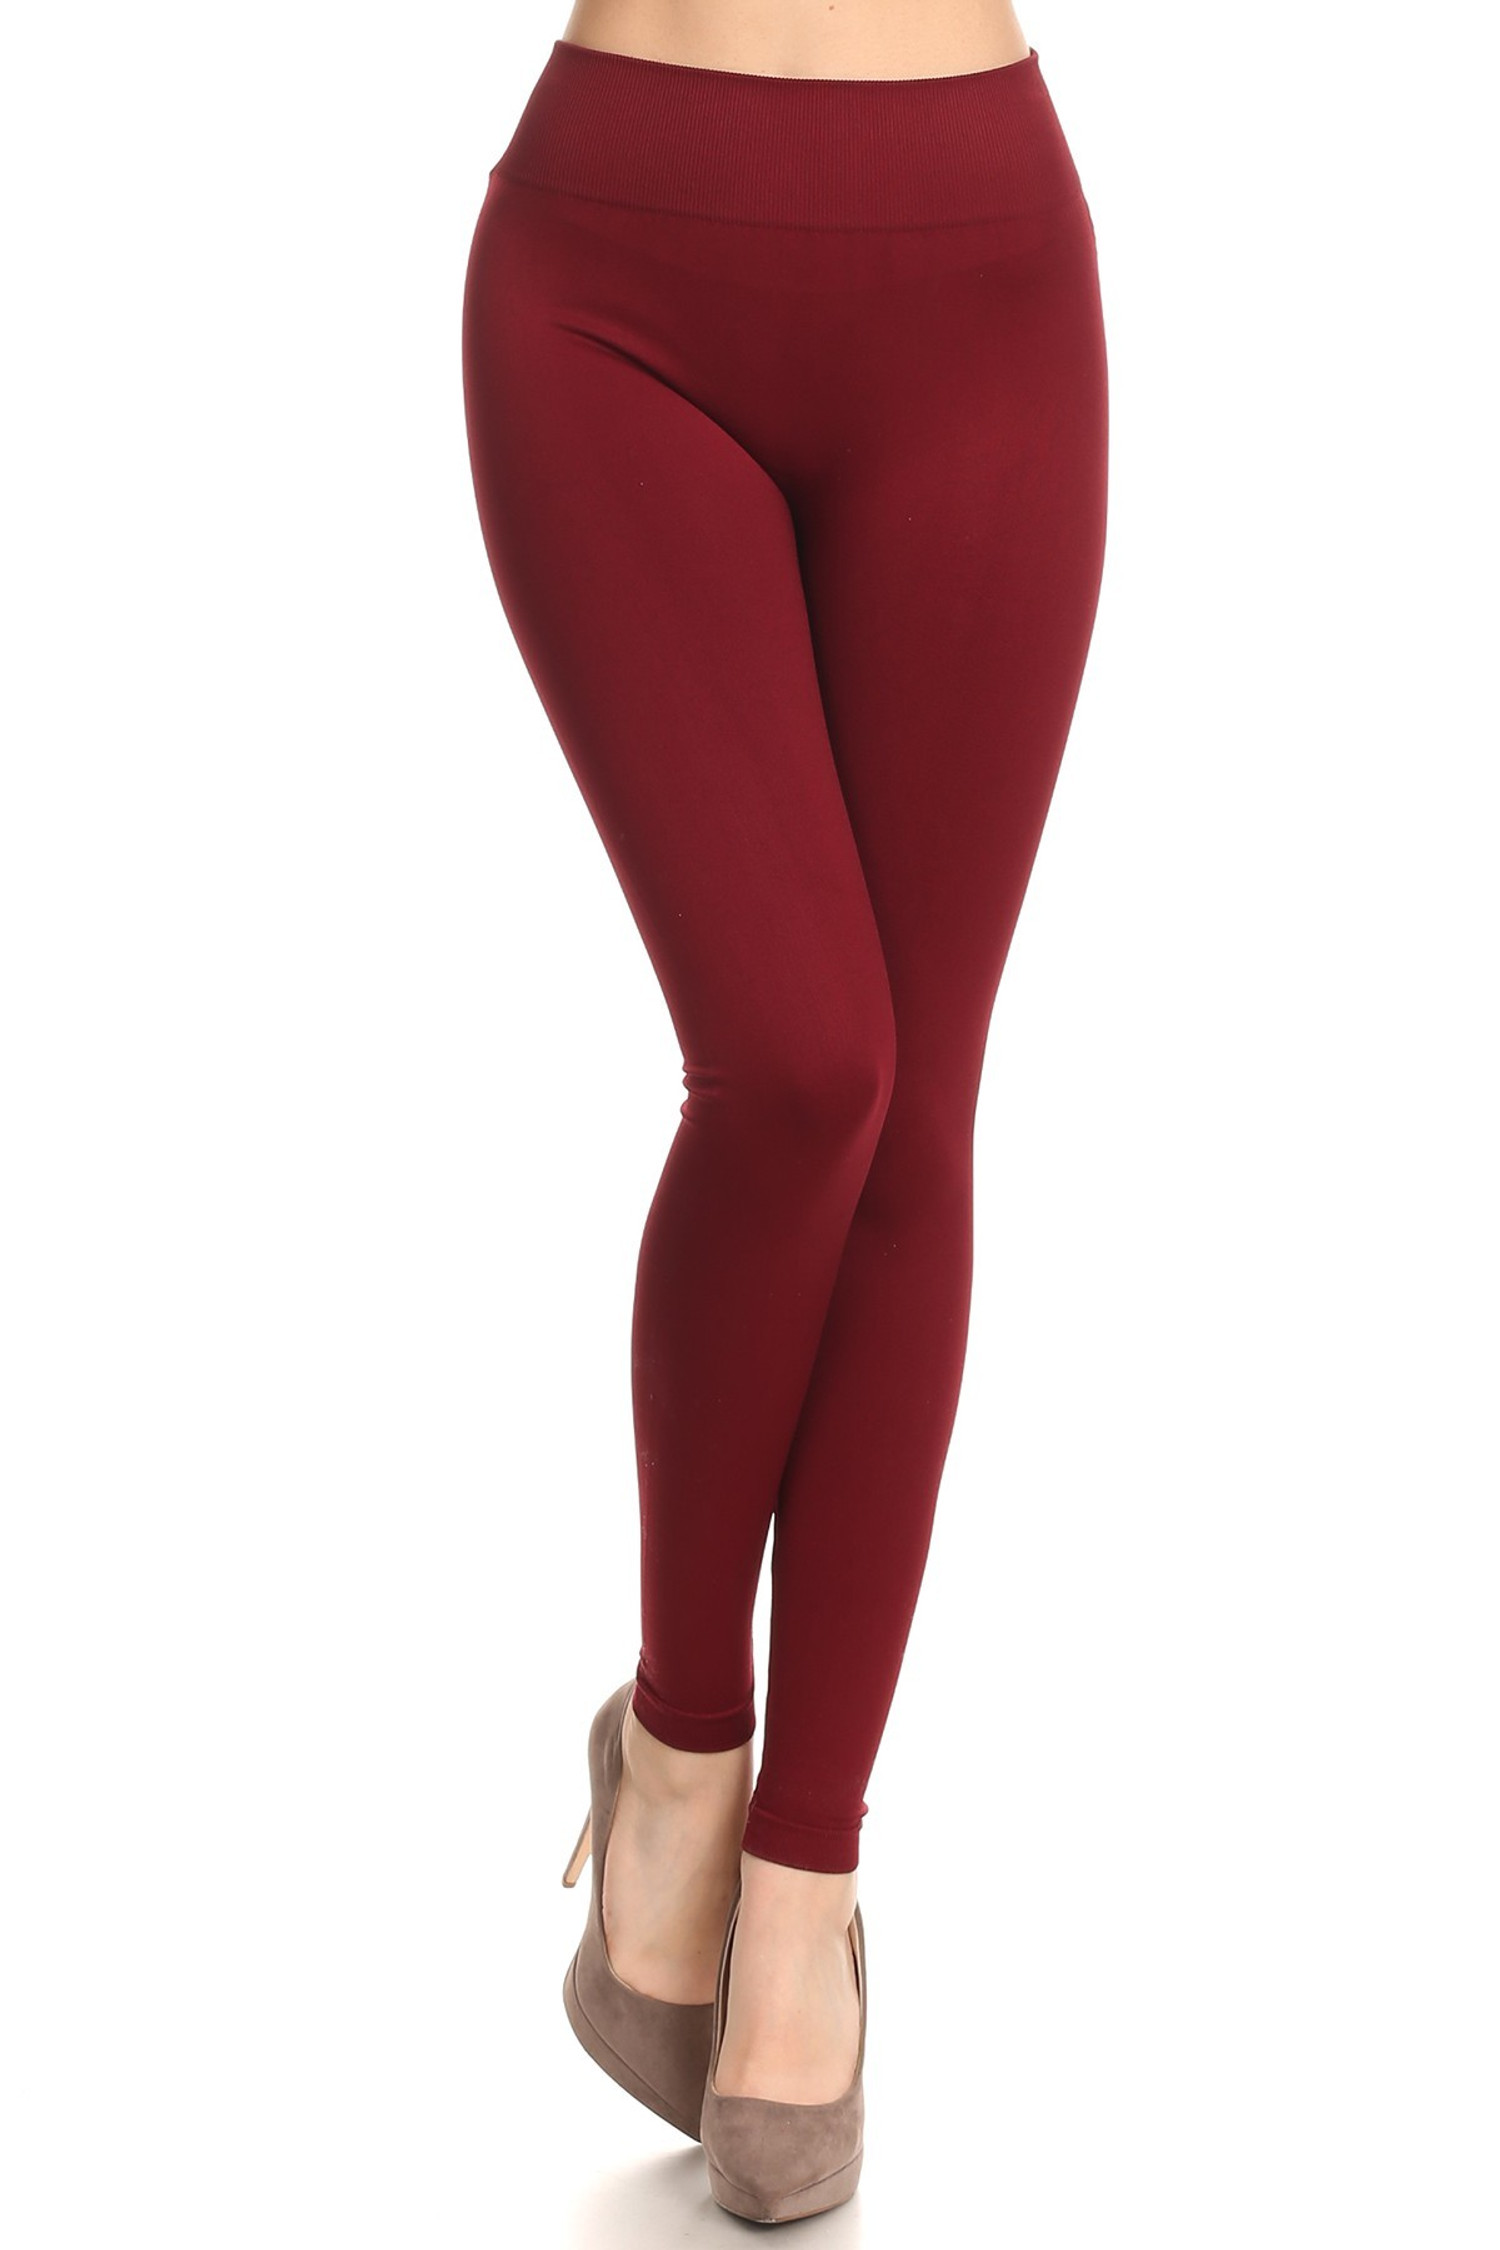 Extra Thick Solid Basic Leggings